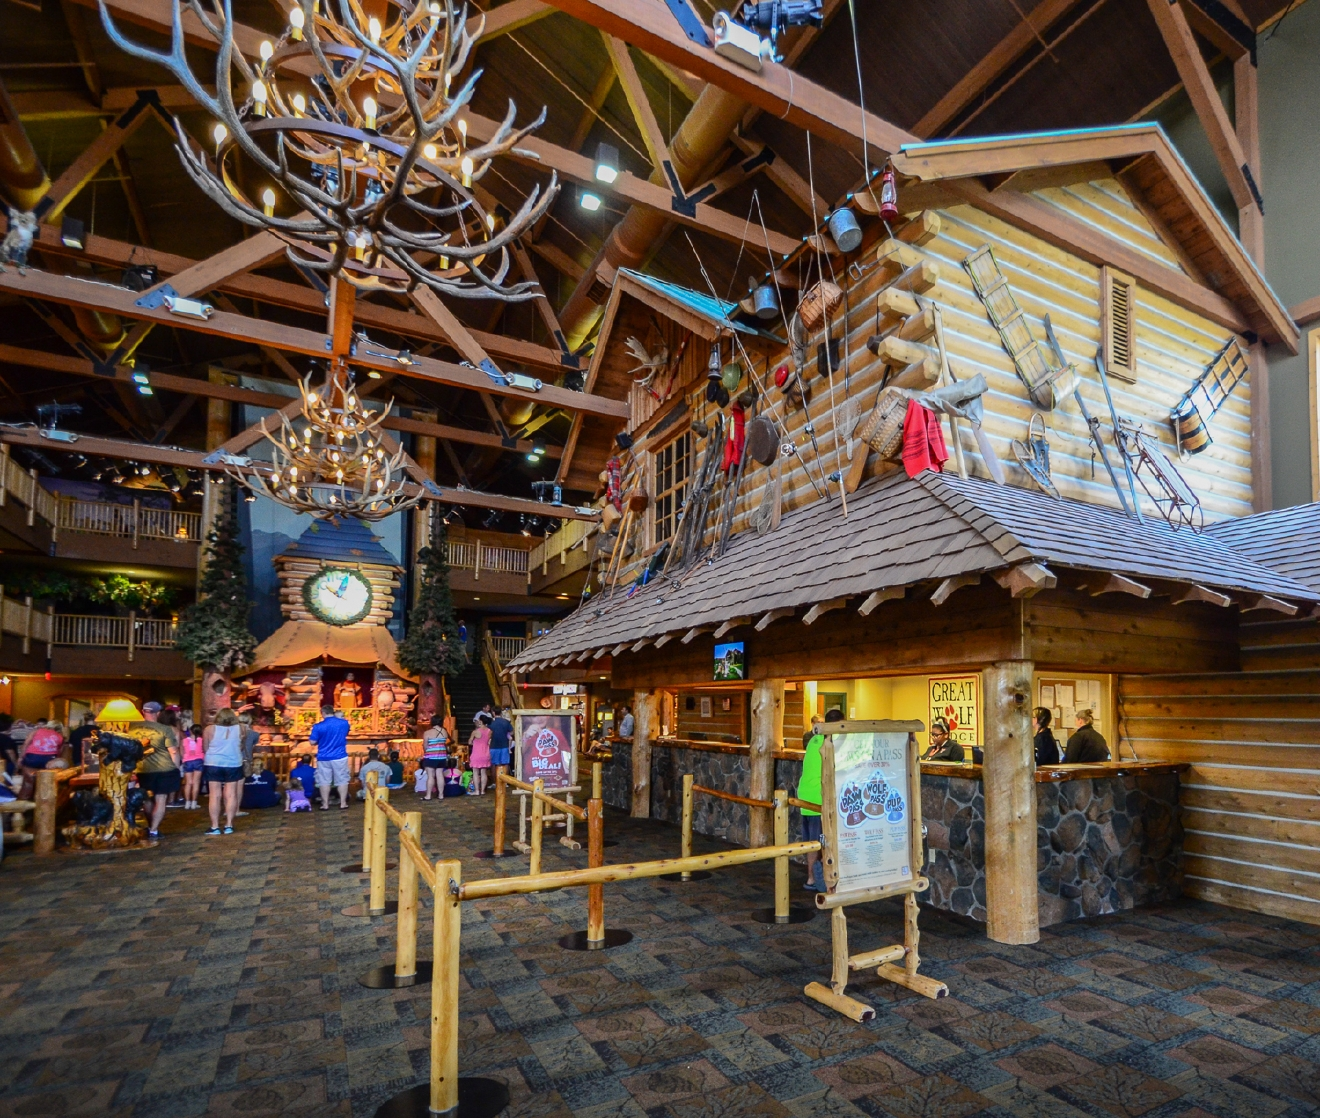 In need of a staycation for the kids? Look no further than Great Wolf Lodge Resort. Located in Mason, this resort offers a myriad of attractions, including an indoor water park. Cannonball! / ADDRESS: 2501 Great Wolf Dr. Mason, OH 45040 // IMAGE: Sherry Lachelle Photography